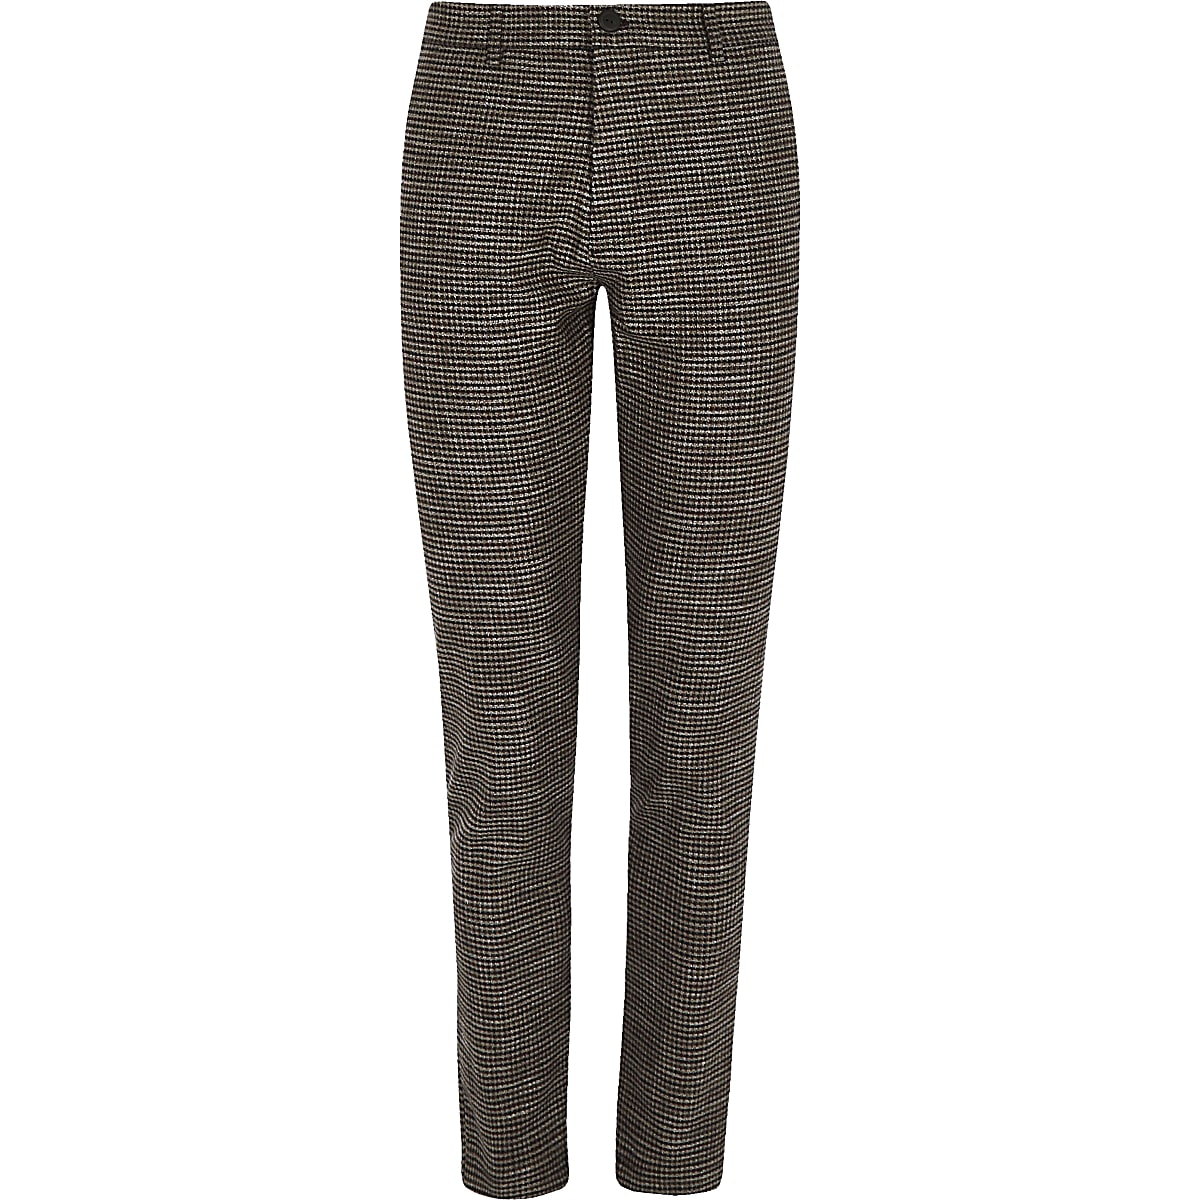 fed28f970617 Brown houndstooth stretch super skinny pants - Casual Pants - Pants ...